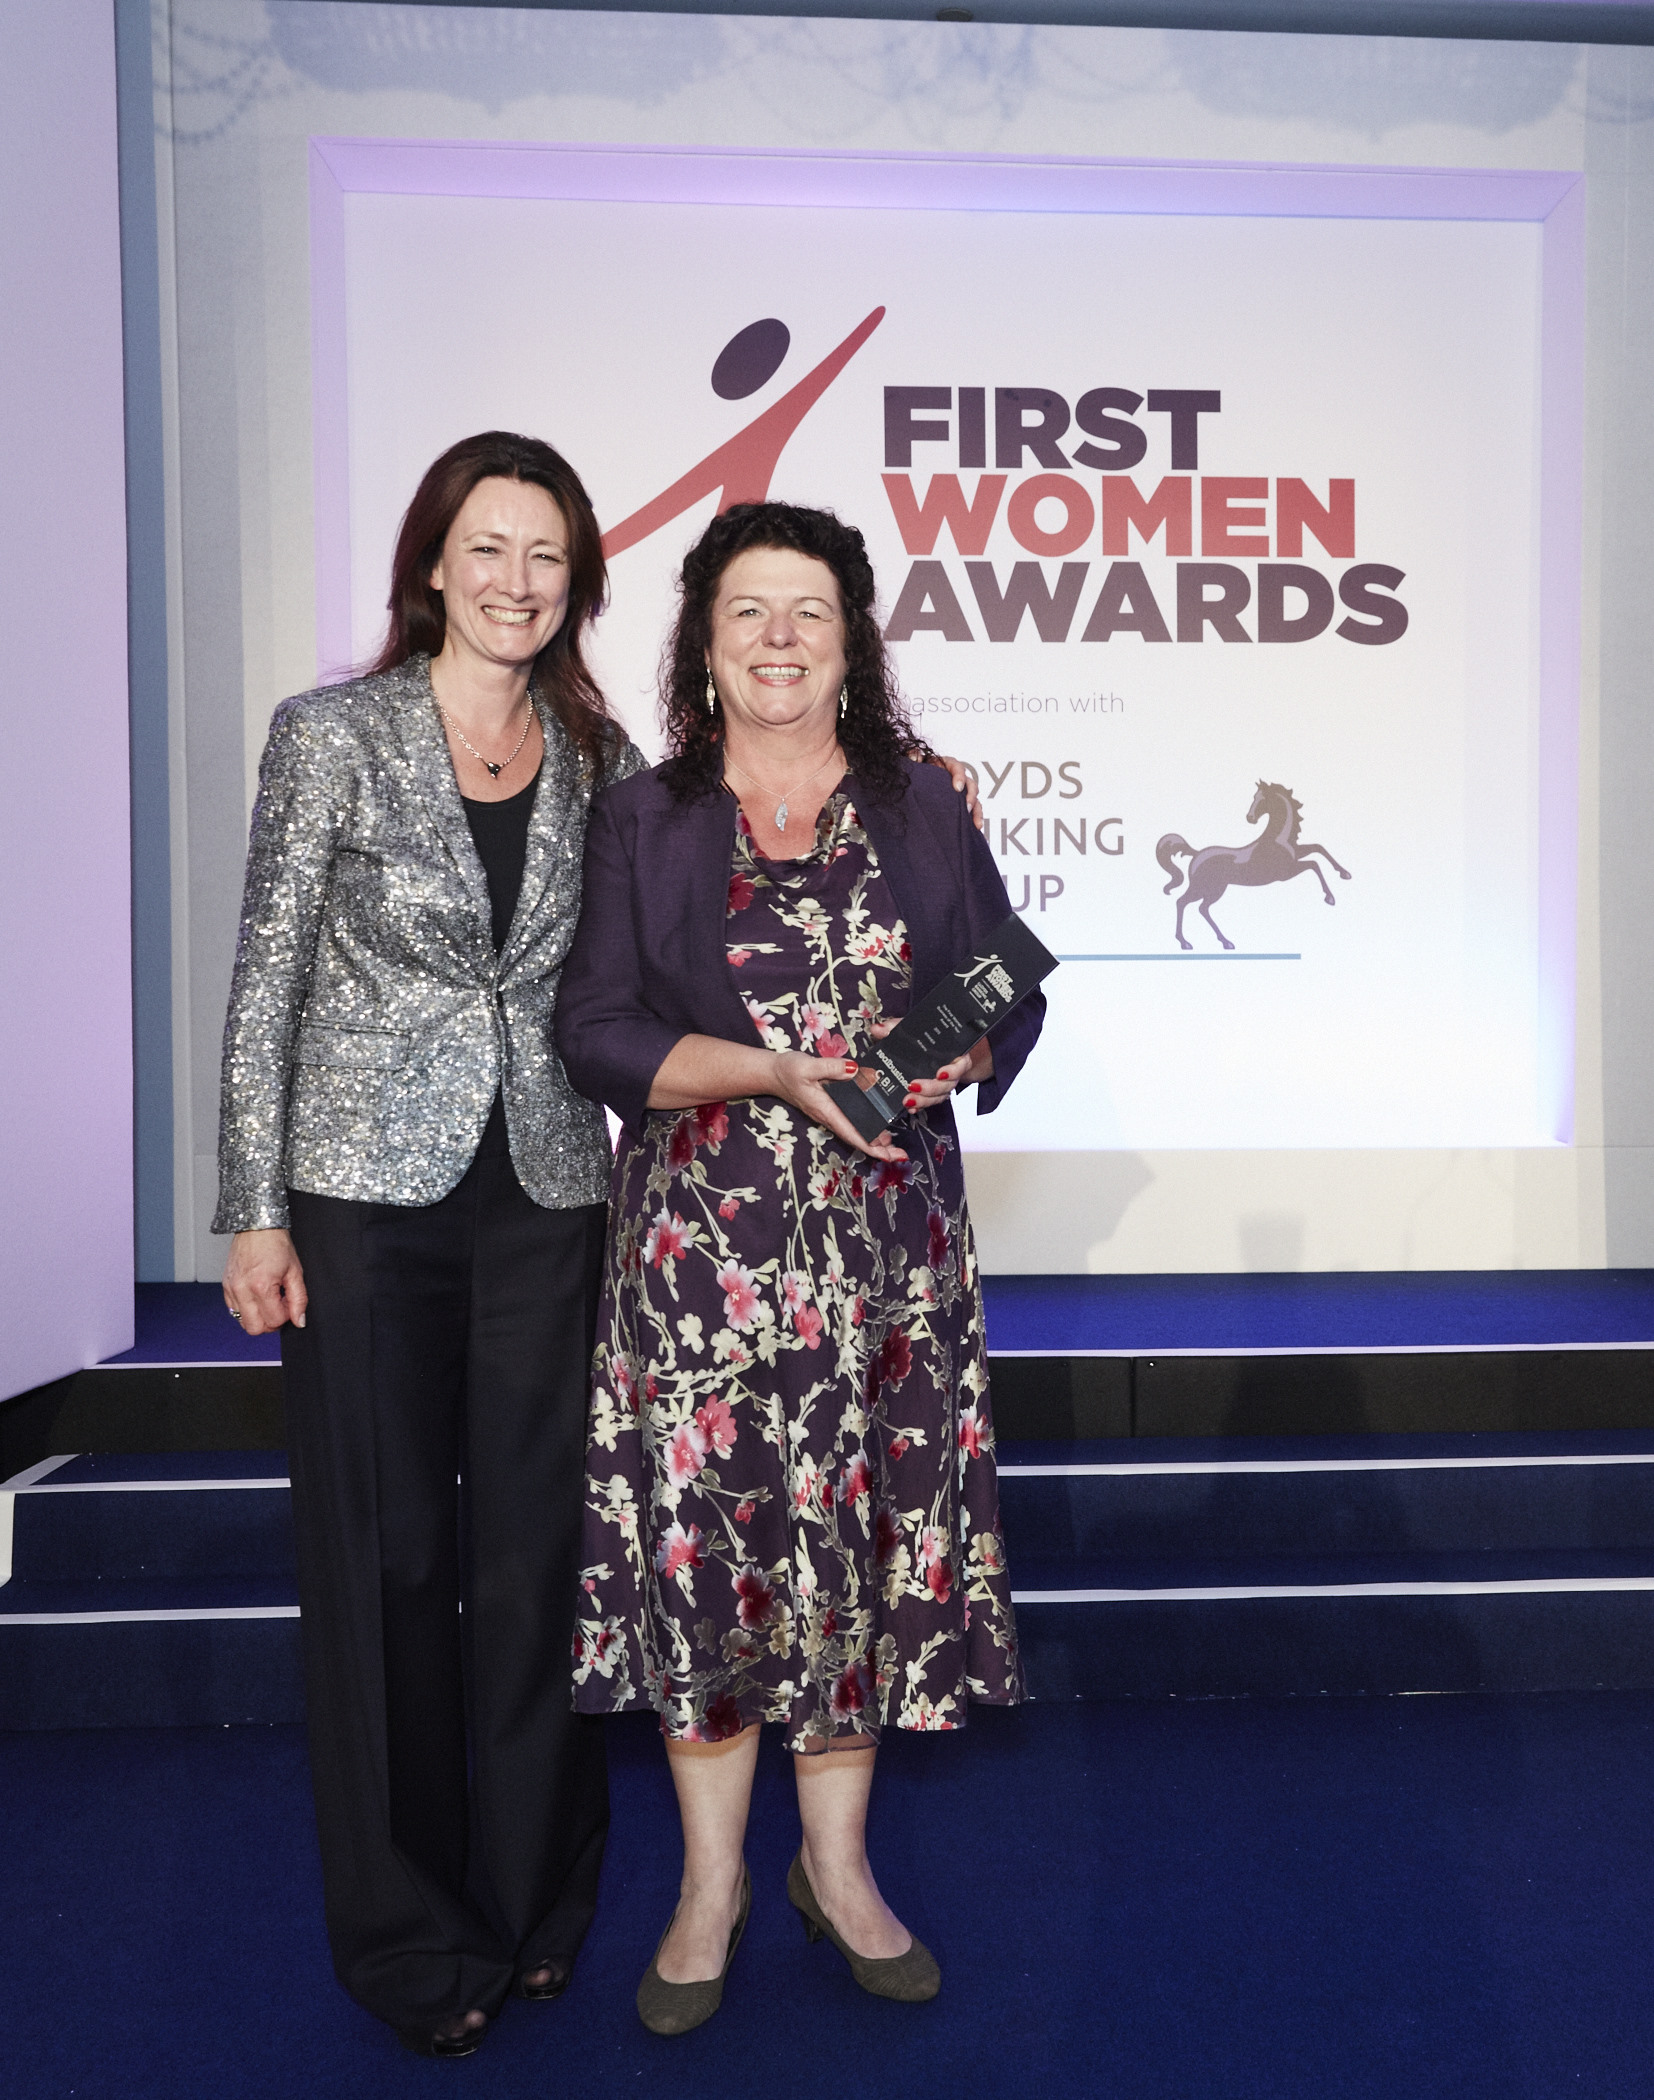 The pride of Suffolk wins First Women Business of the Year